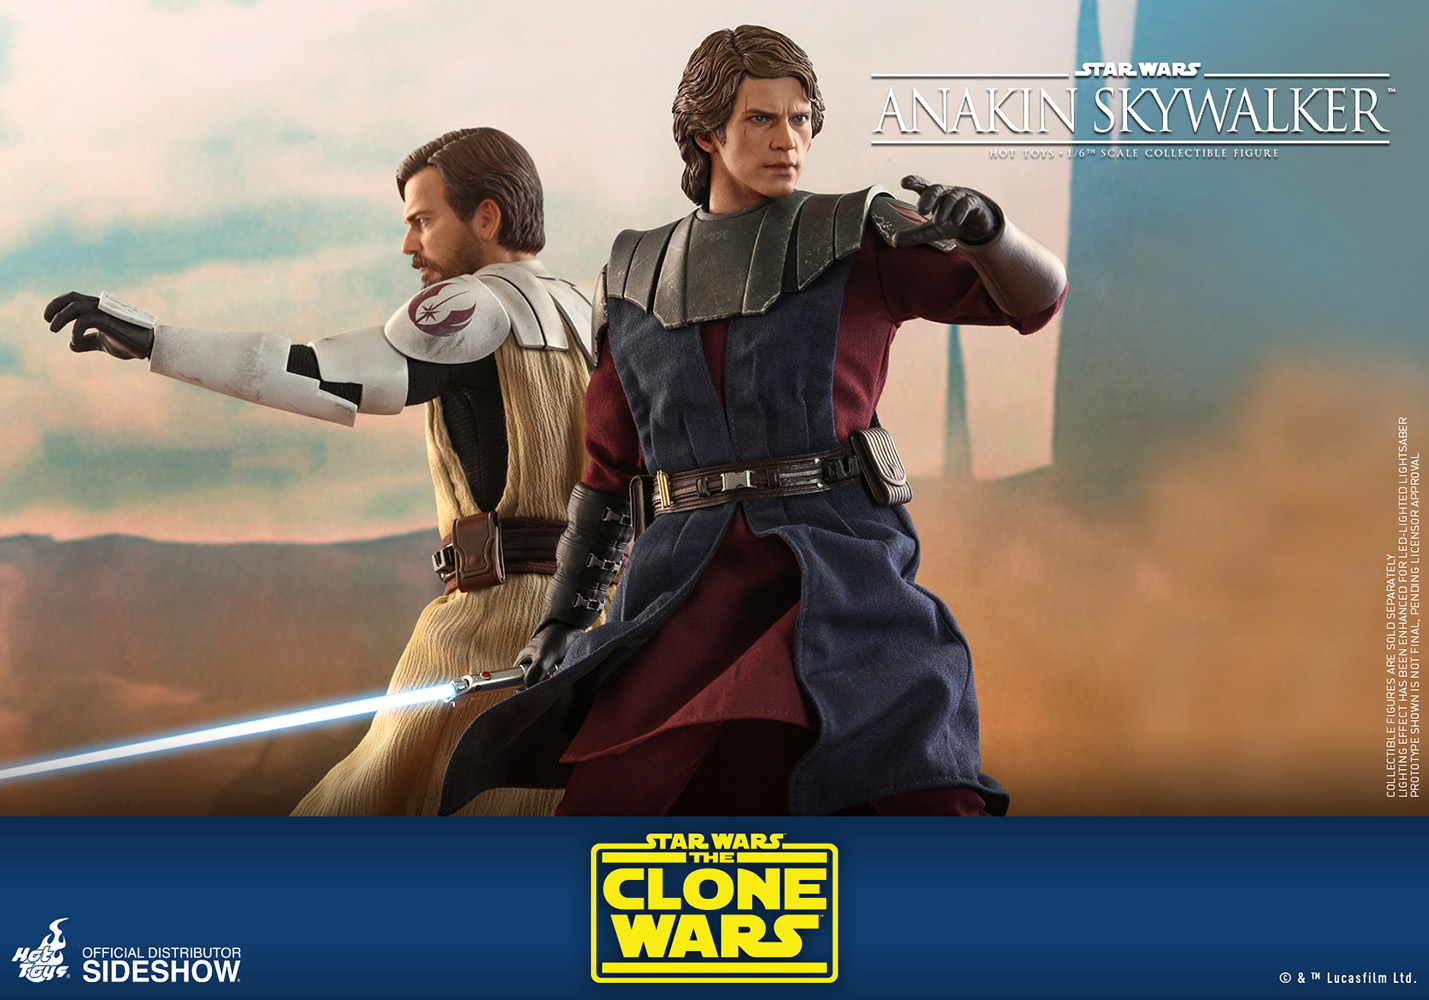 Sci-Fi - NEW PRODUCT: HOT TOYS: STAR WARS: THE CLONE WARS ANAKIN SKYWALKER AND STAP 1/6TH SCALE COLLECTIBLE SET Anakin-skywalker_star-wars_gallery_5f19fc15b9c8d